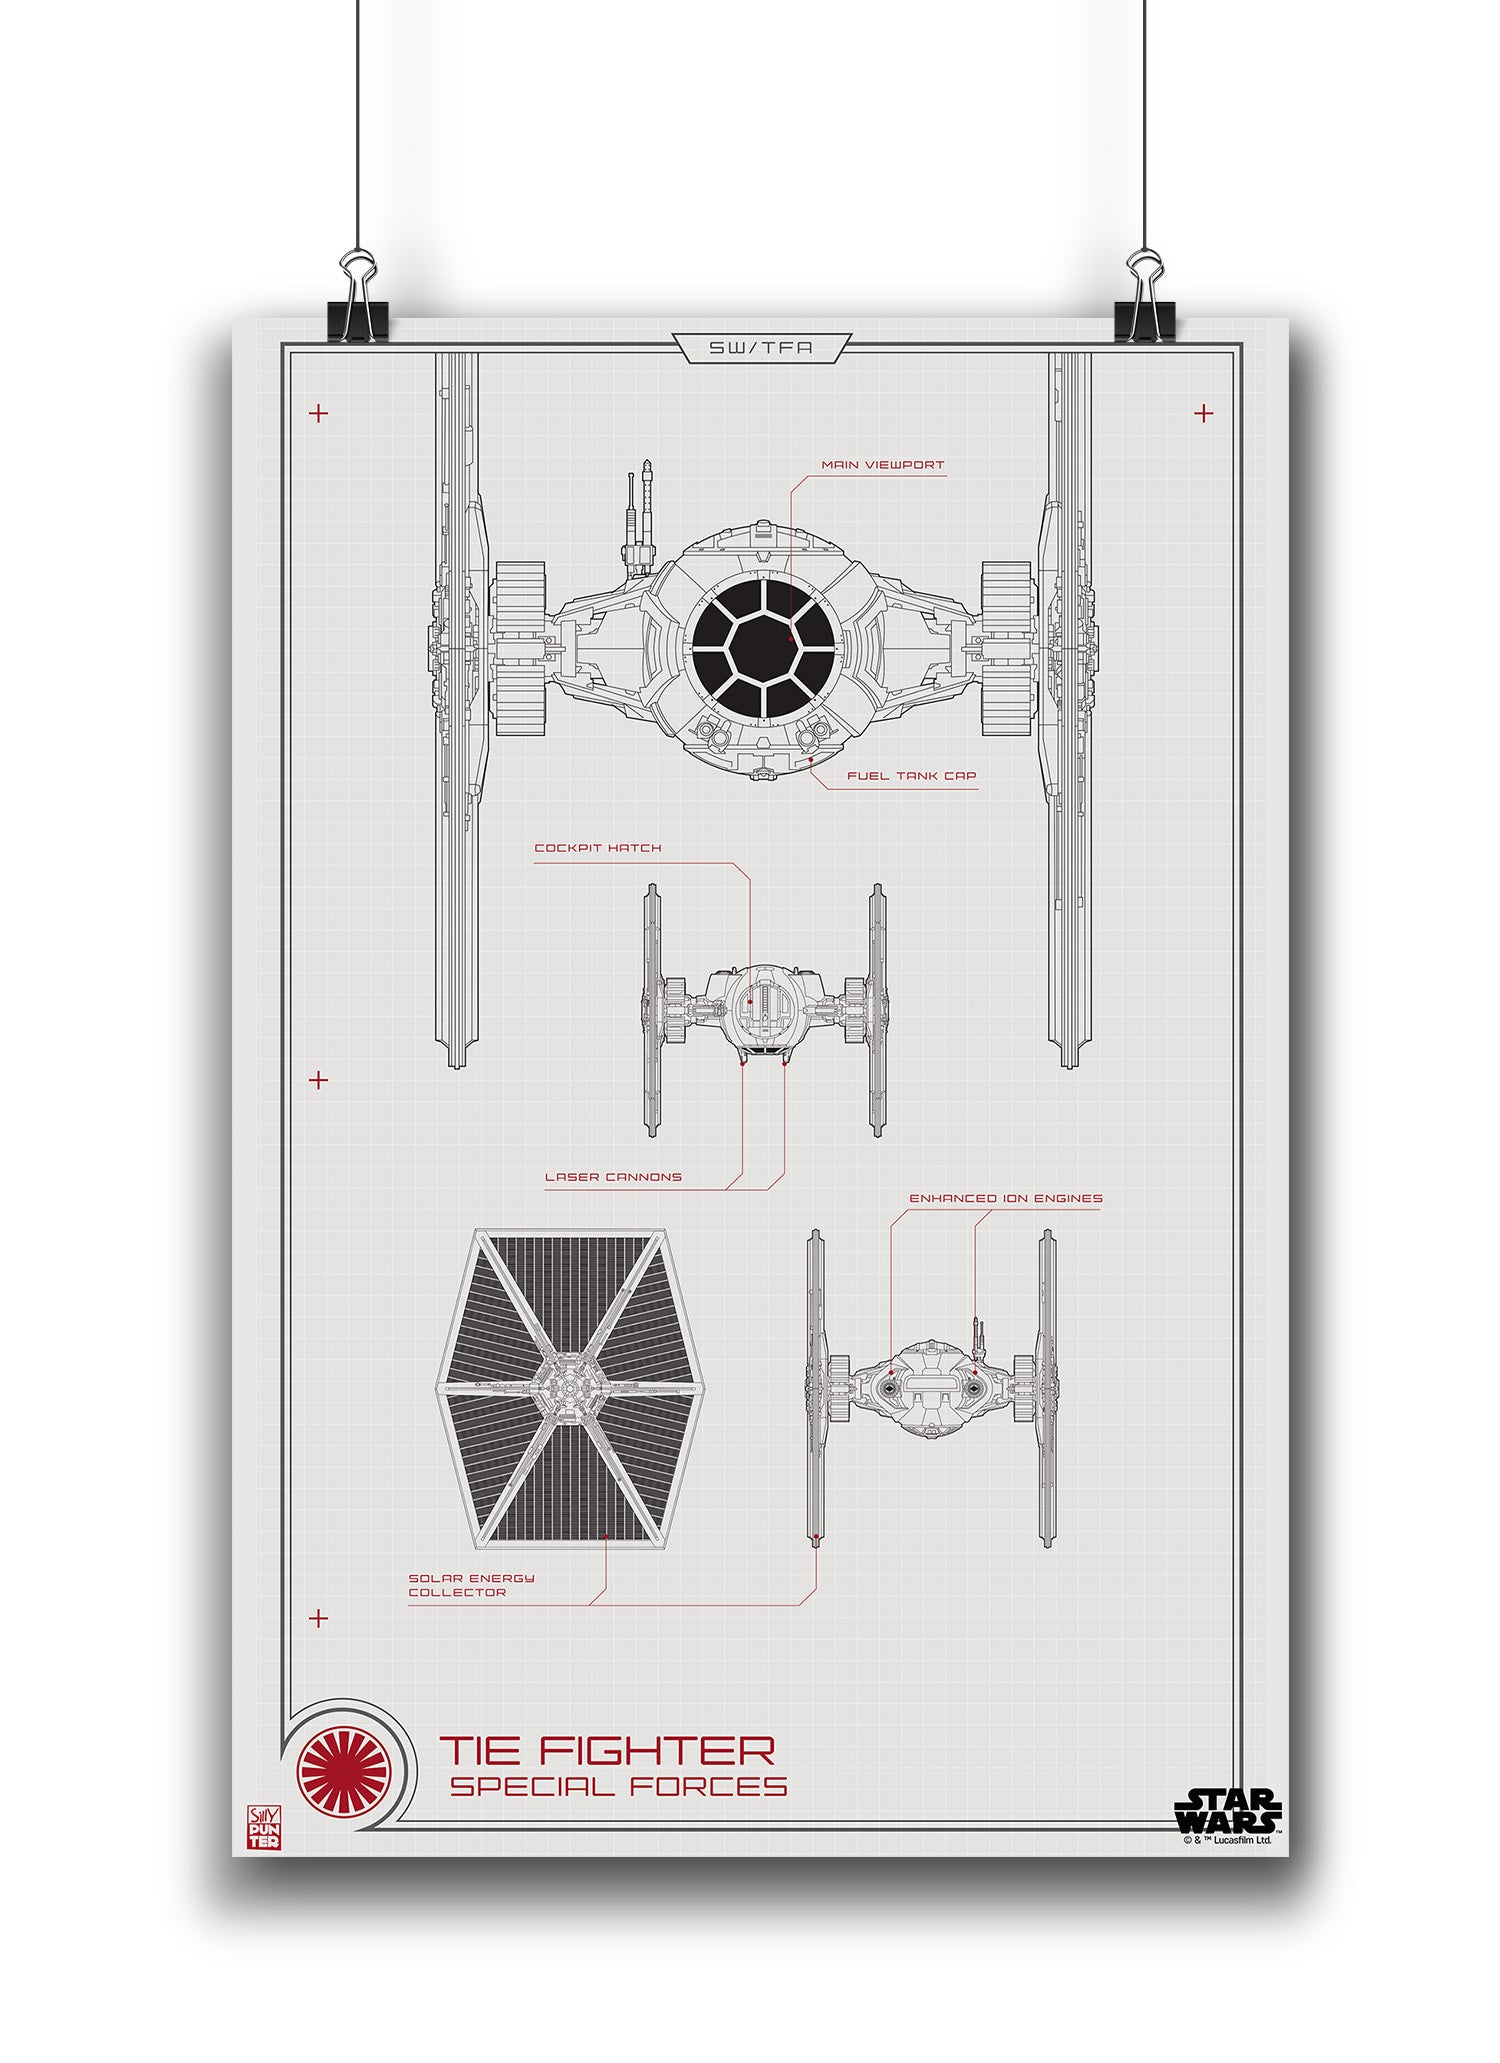 Star wars tie fighter special forces blueprint poster in india star wars tie fighter special forces blueprint poster malvernweather Images